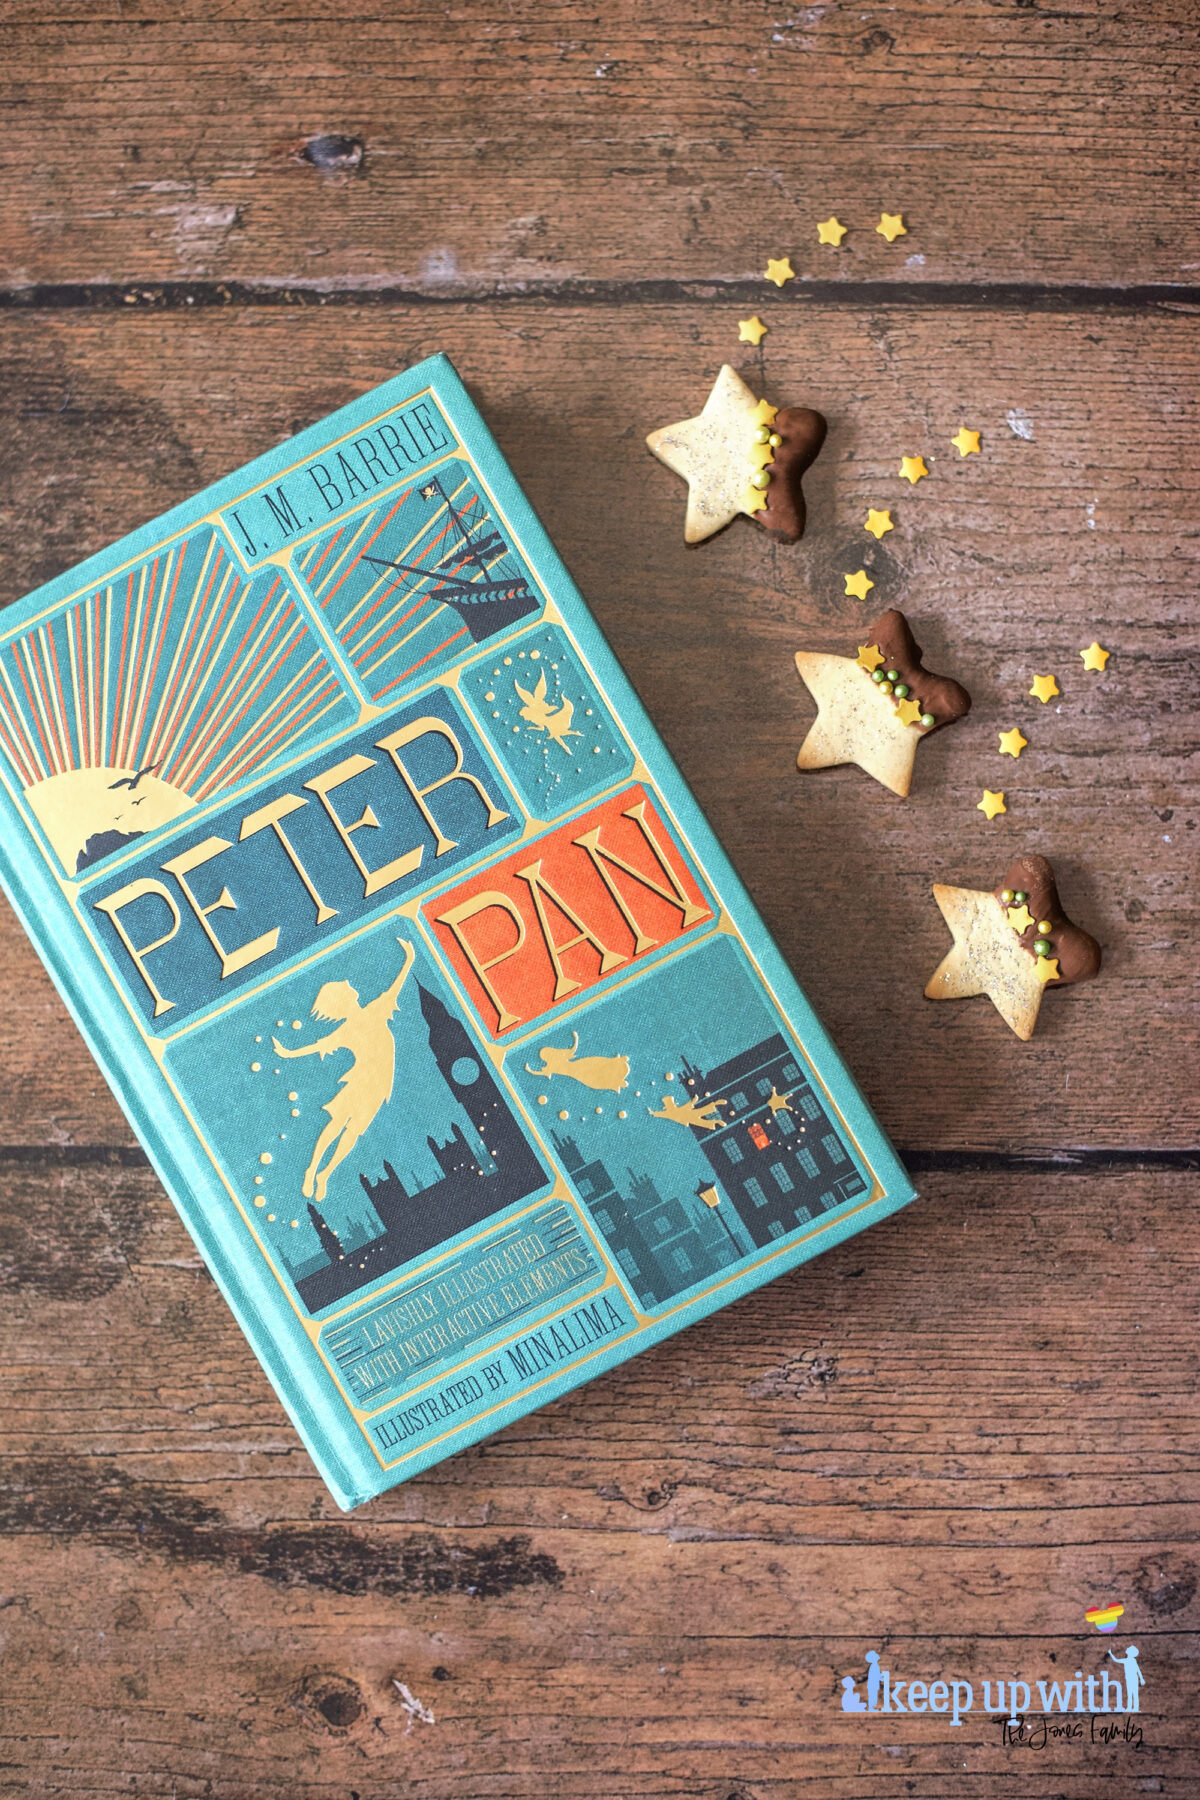 Image shows a wooden tabletop with a copy of J M Barrie's Peter Pan. On the book pages and the table are small star shaped biscuits. Half of each biscuit is dipped in chocolate and  the other is sprinkled with silver edible glitter.  The dividing line is decorated with yellow star sprinkles and green pearl shaped sprinkles. Image by Keep Up With The Jones Family